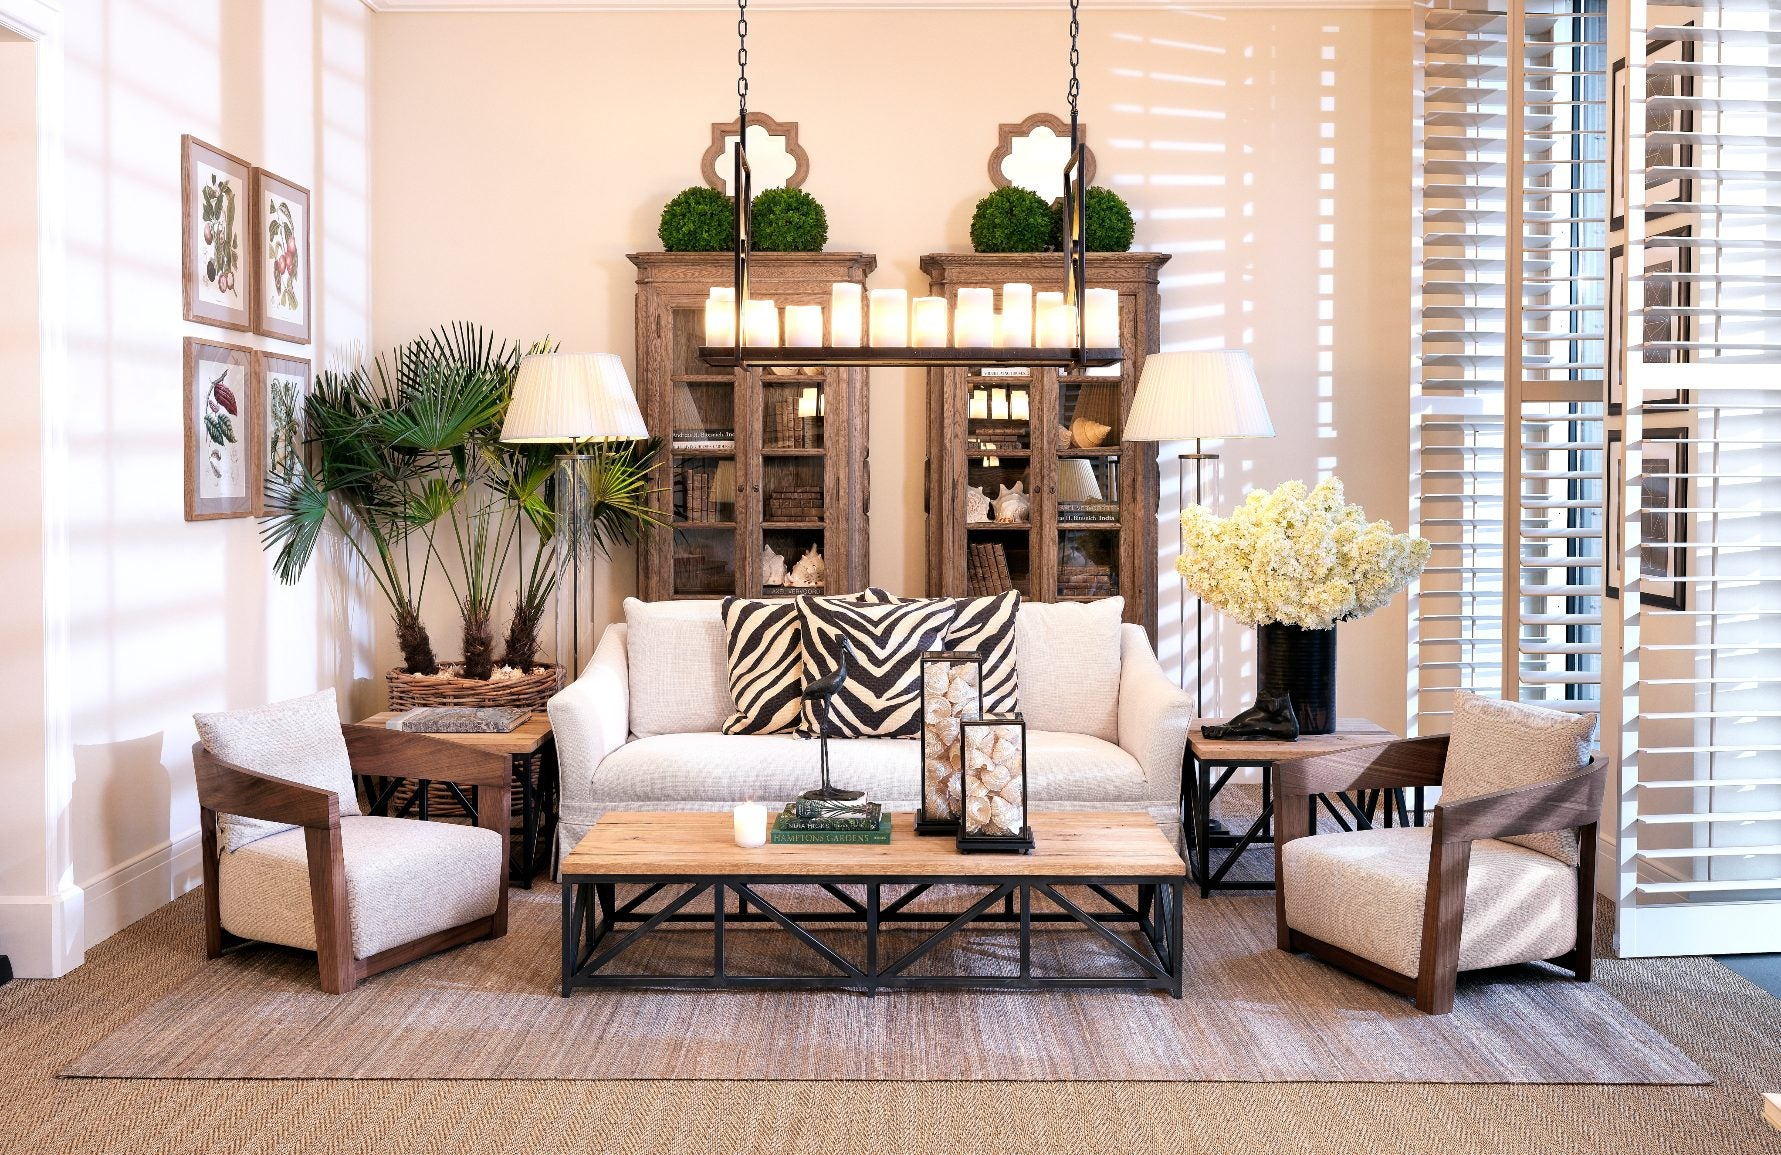 How to Decorate with Animal Print in your Home   LuxDeco.com